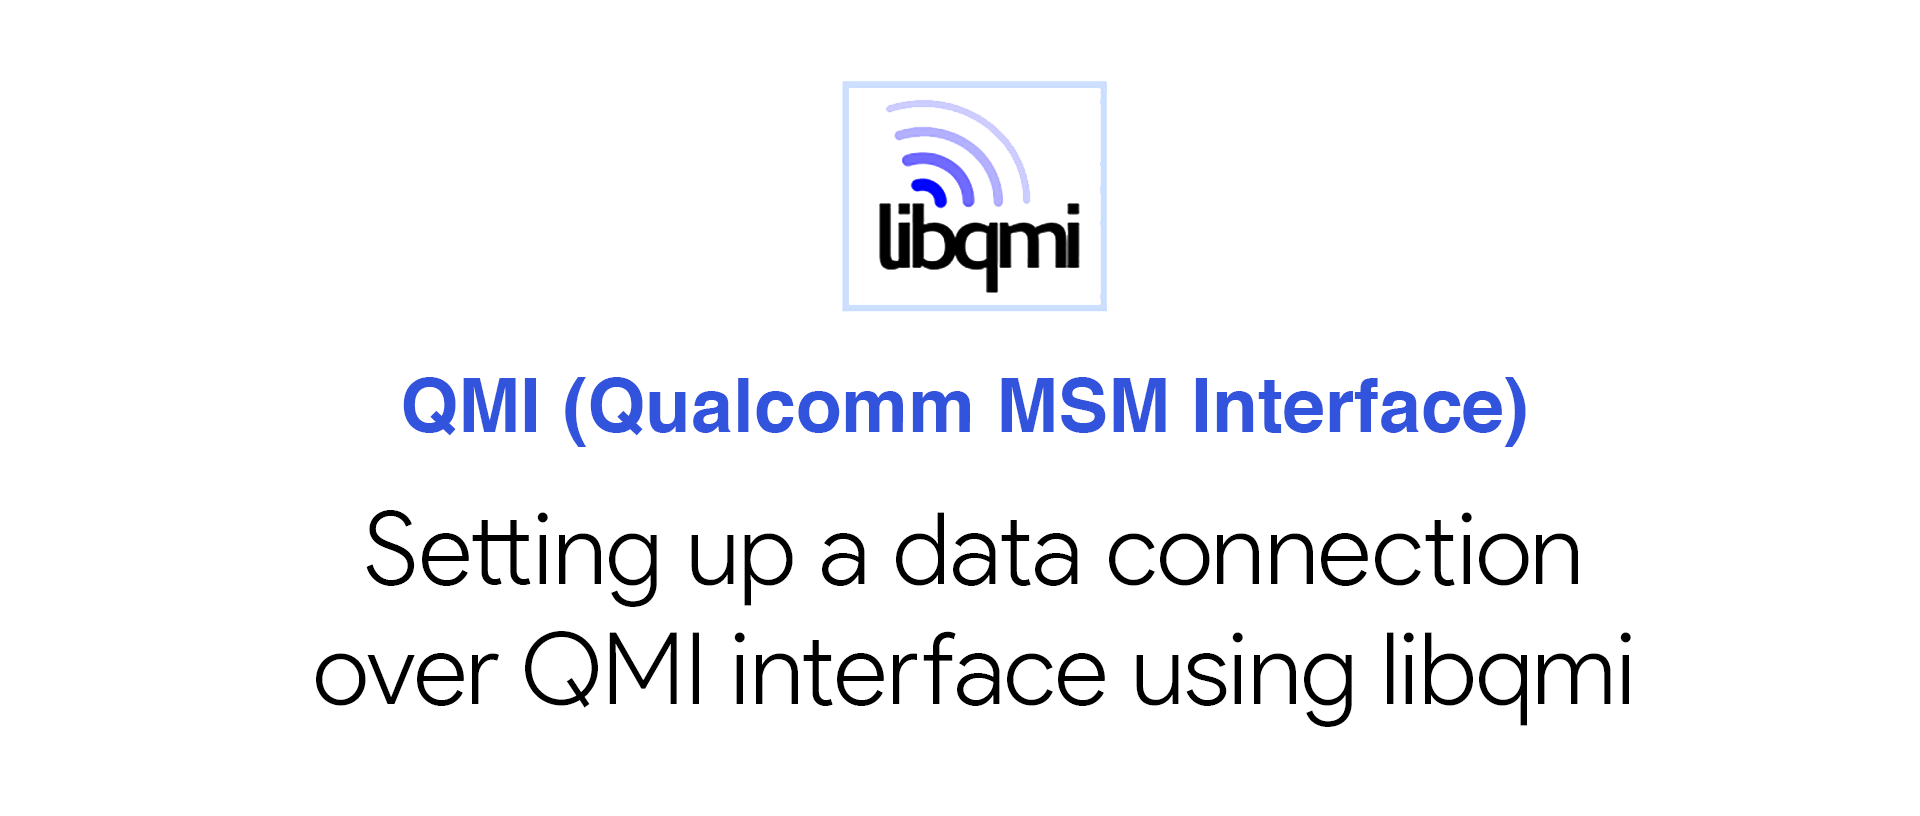 Setting up a data connection over QMI interface using libqmi